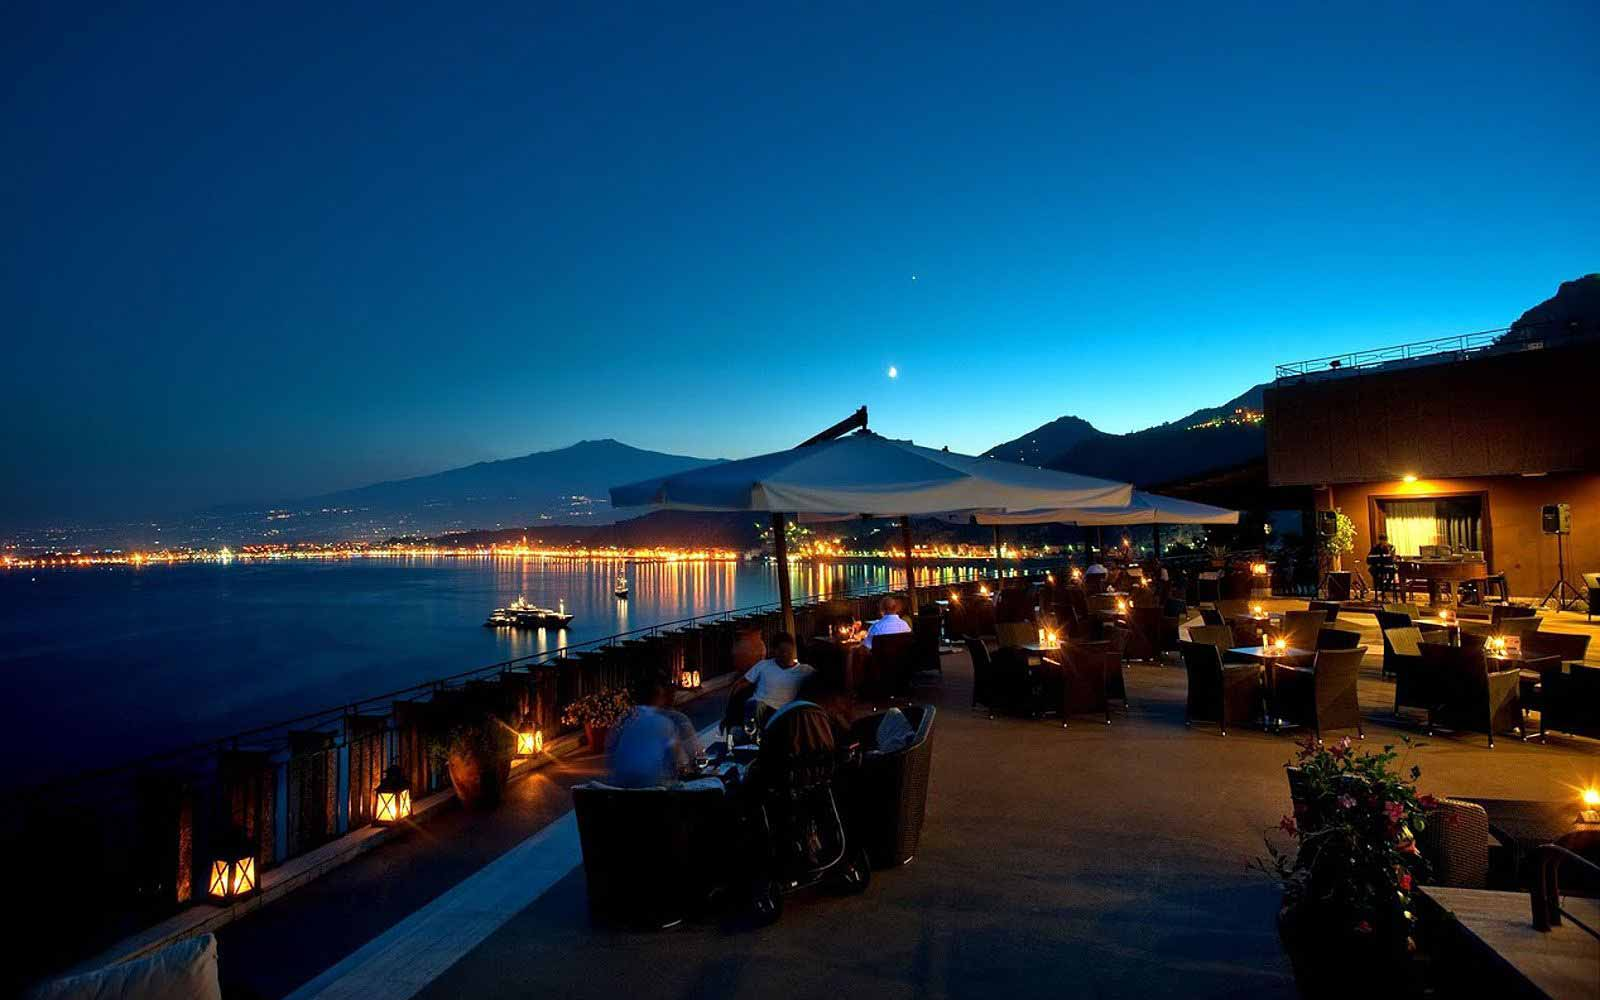 Terrace of the Atahotel Capotaormina with Mount Etna in the distance